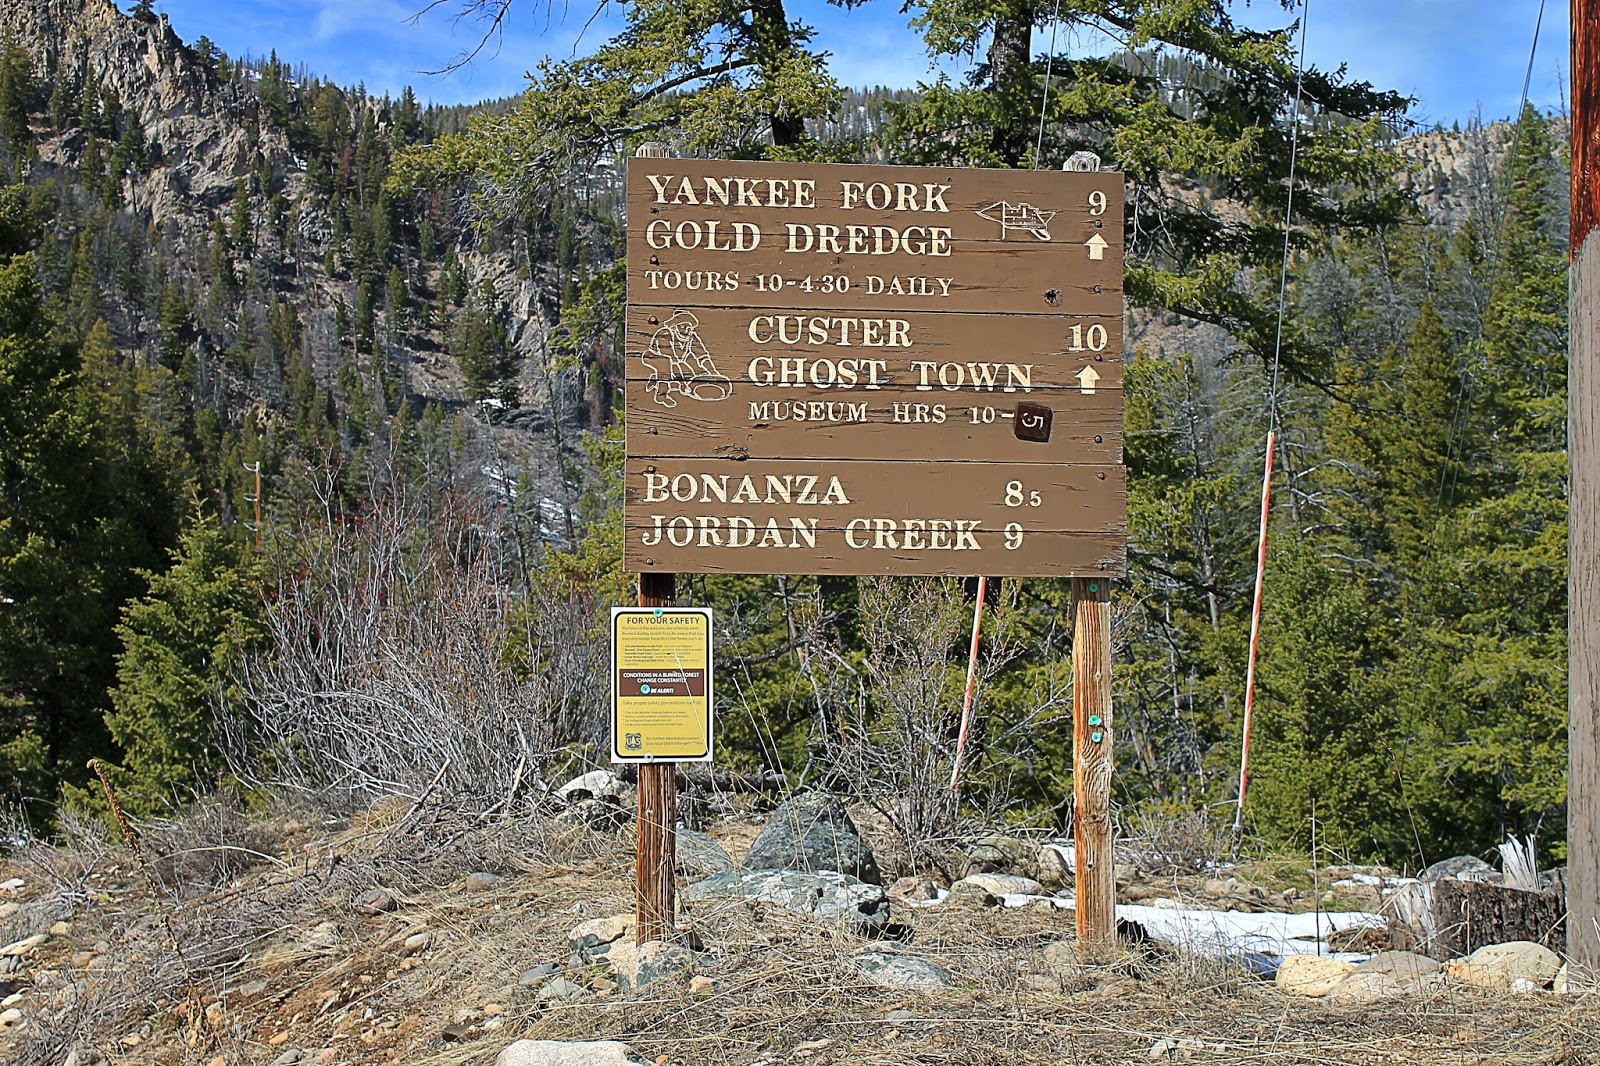 yankee fork Custer and bonanza up the yankee fork, near stanley is a must see if you want to check out idaho ghost towns.